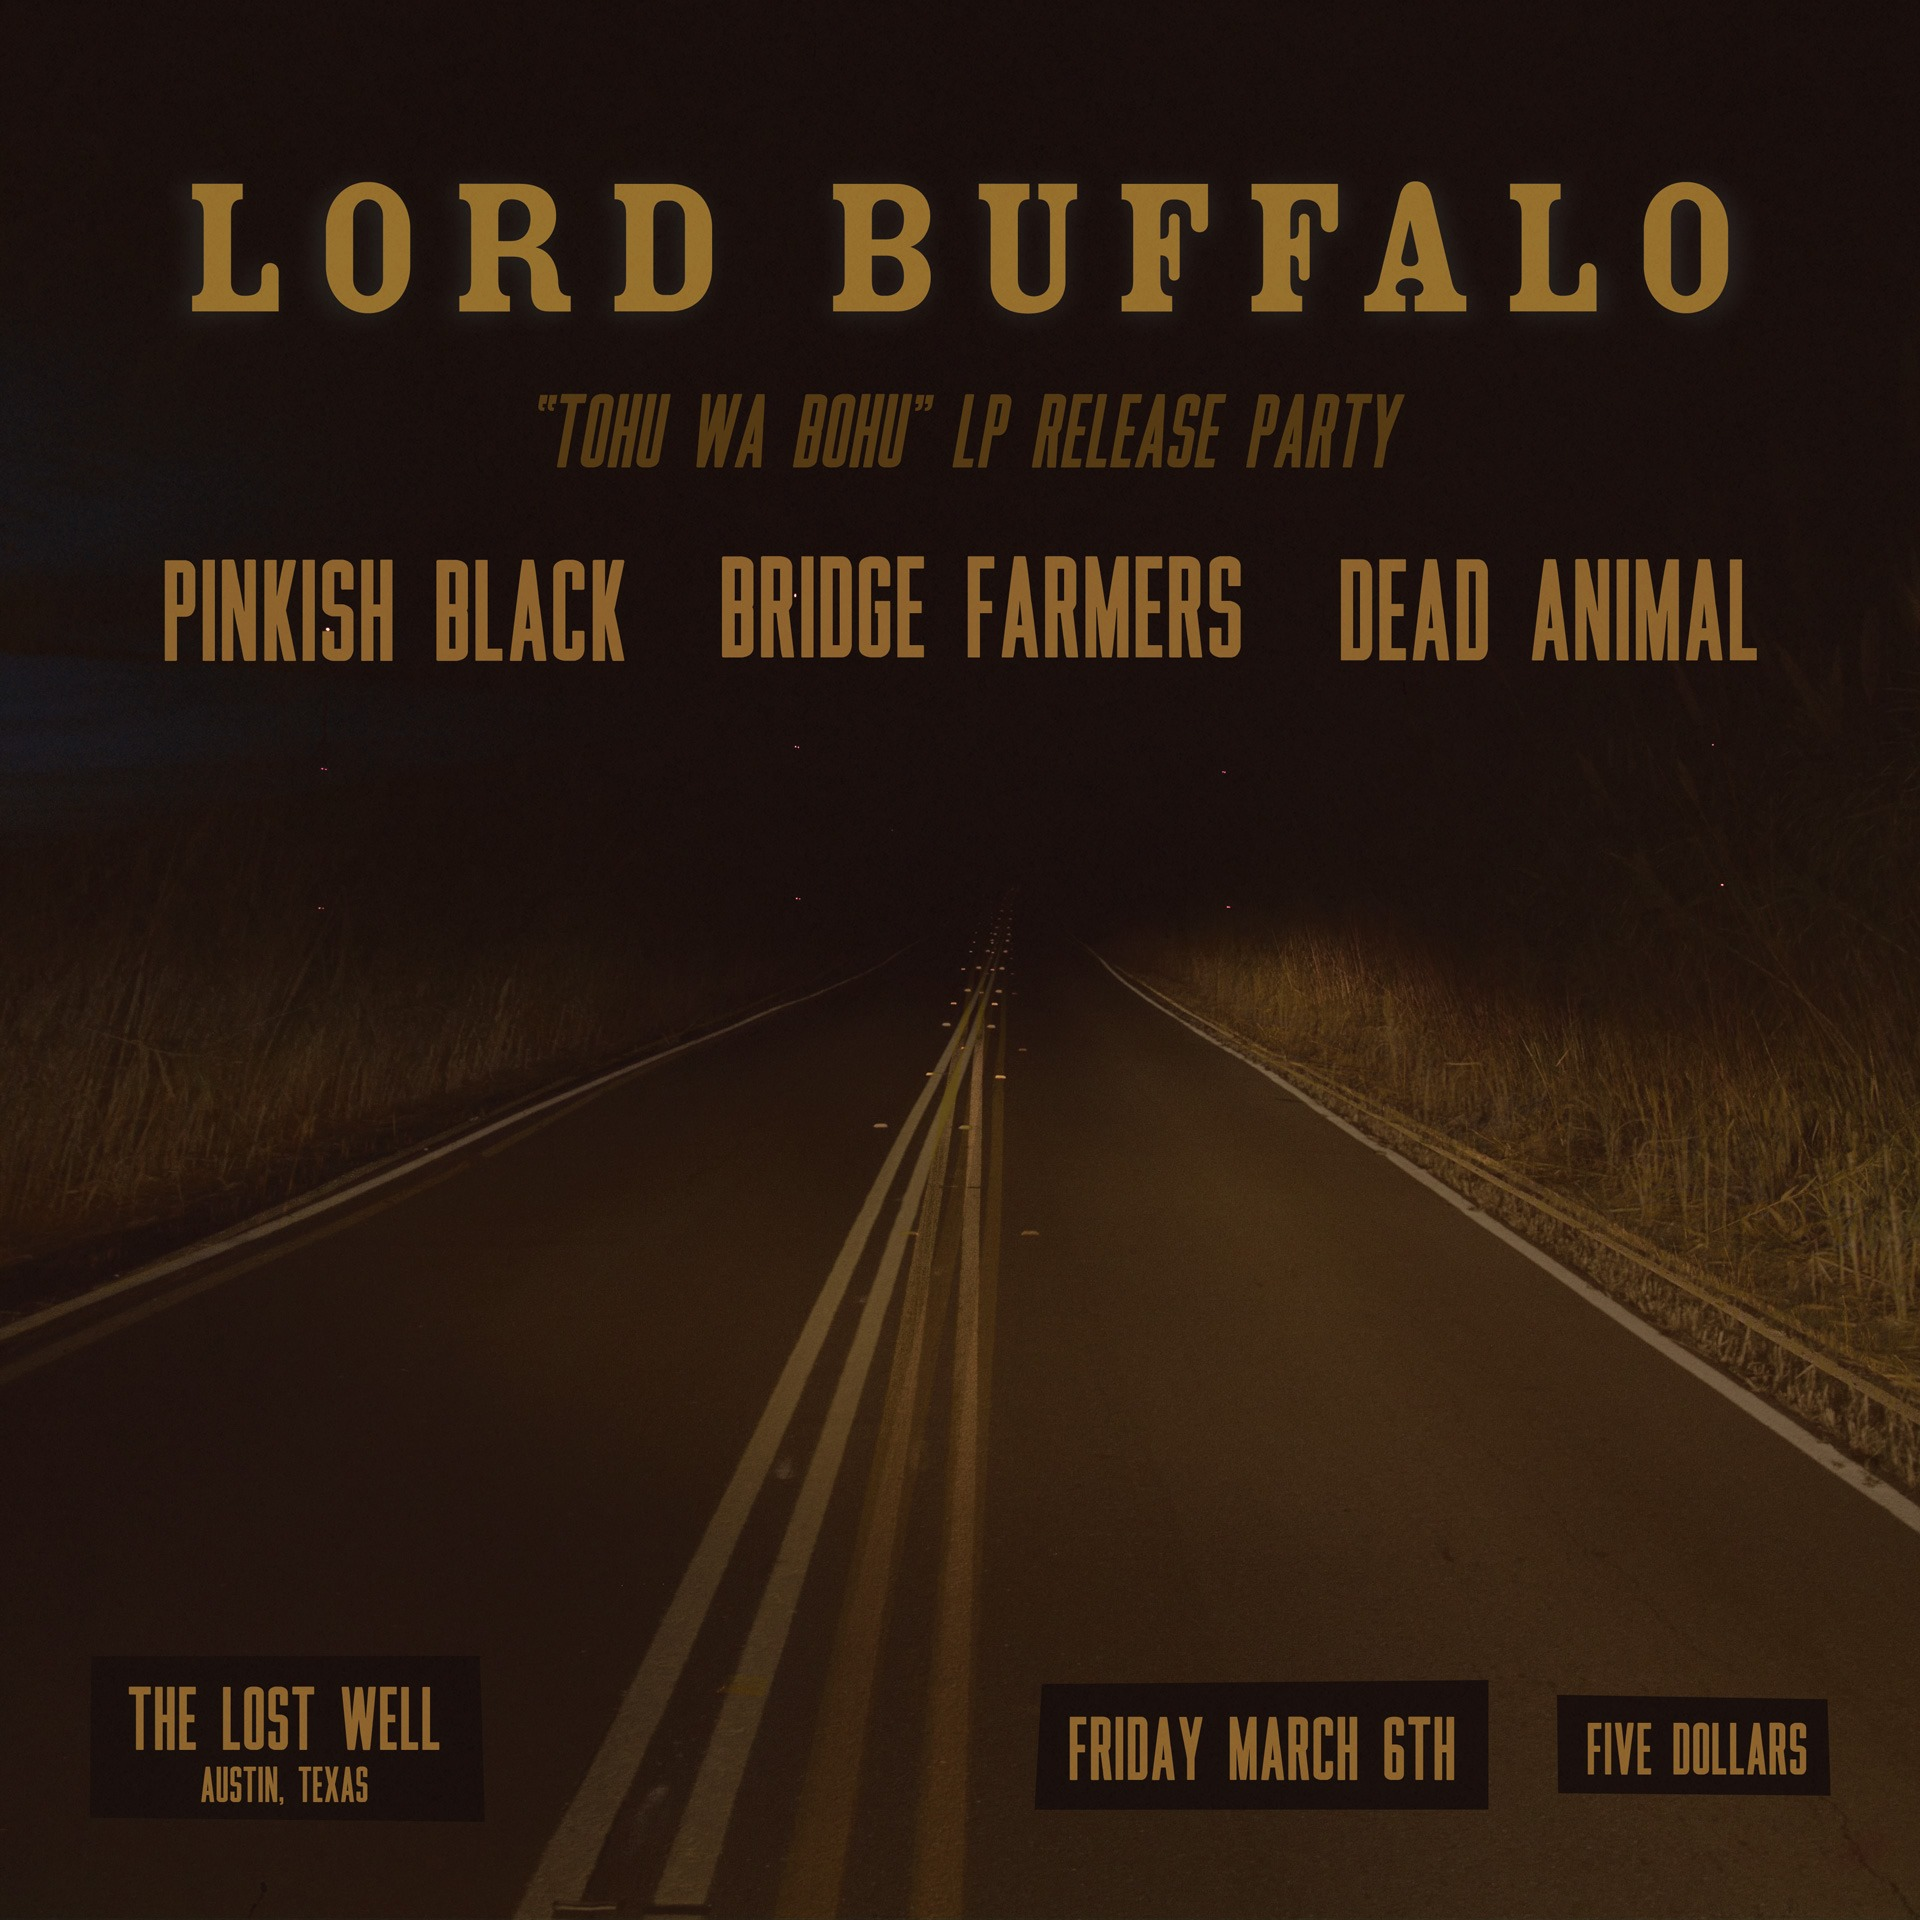 Lord Buffalo (LP Release Party)